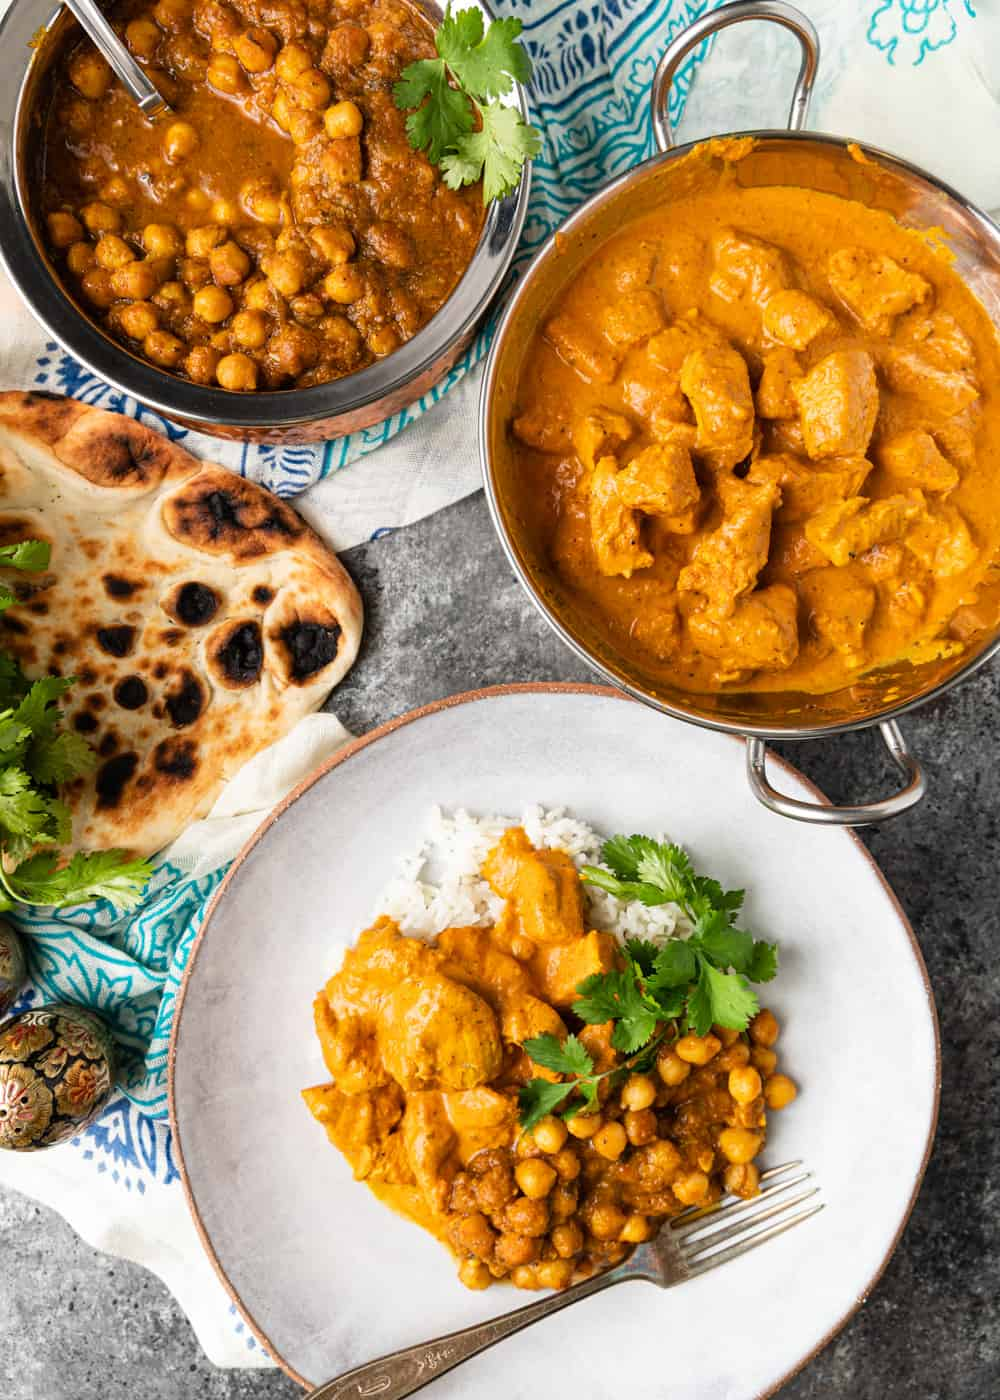 plate of butter chicken with chana masala